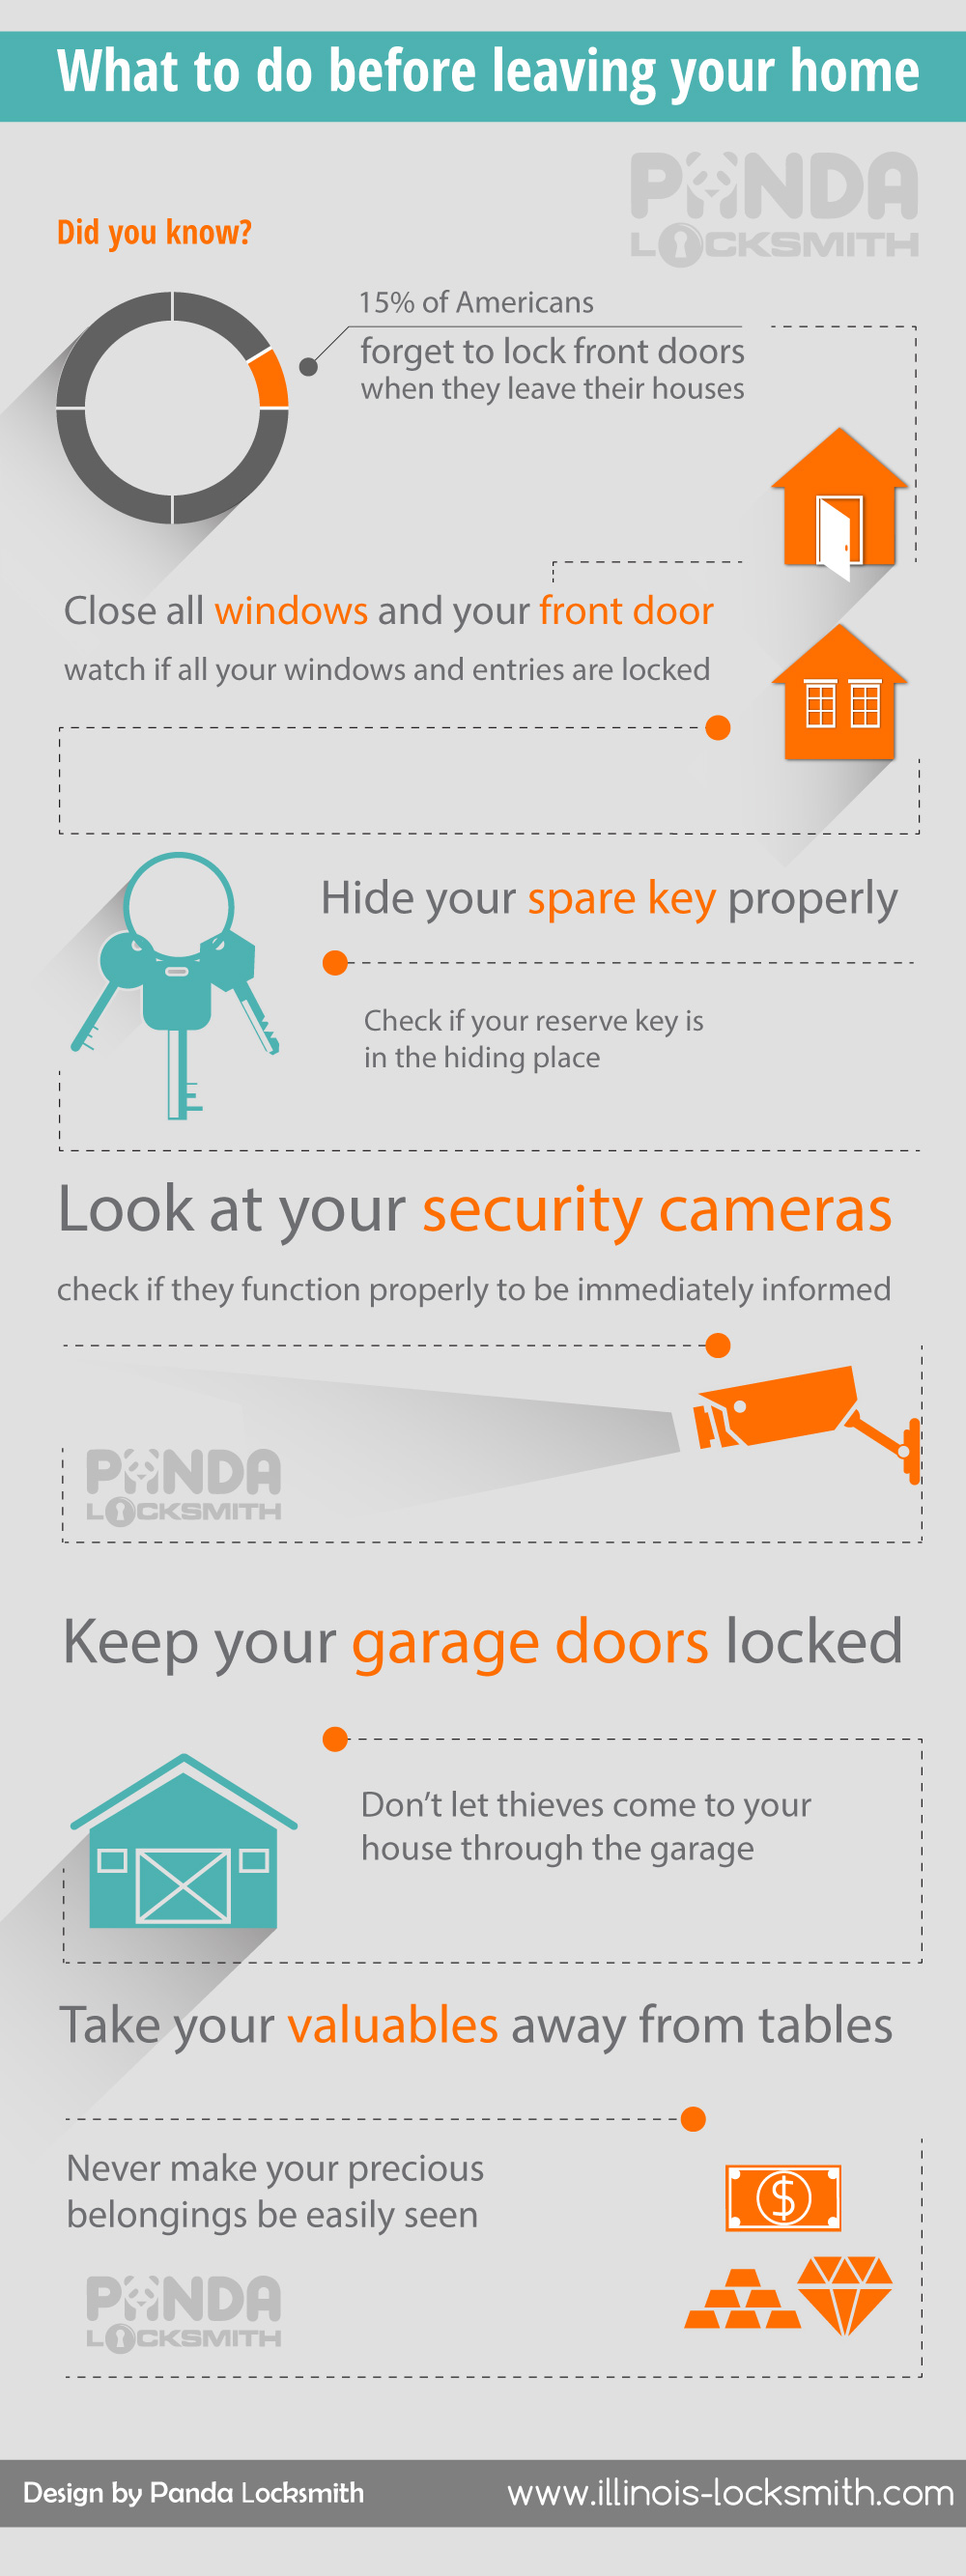 What-to-do-before-leaving-your-home-lock